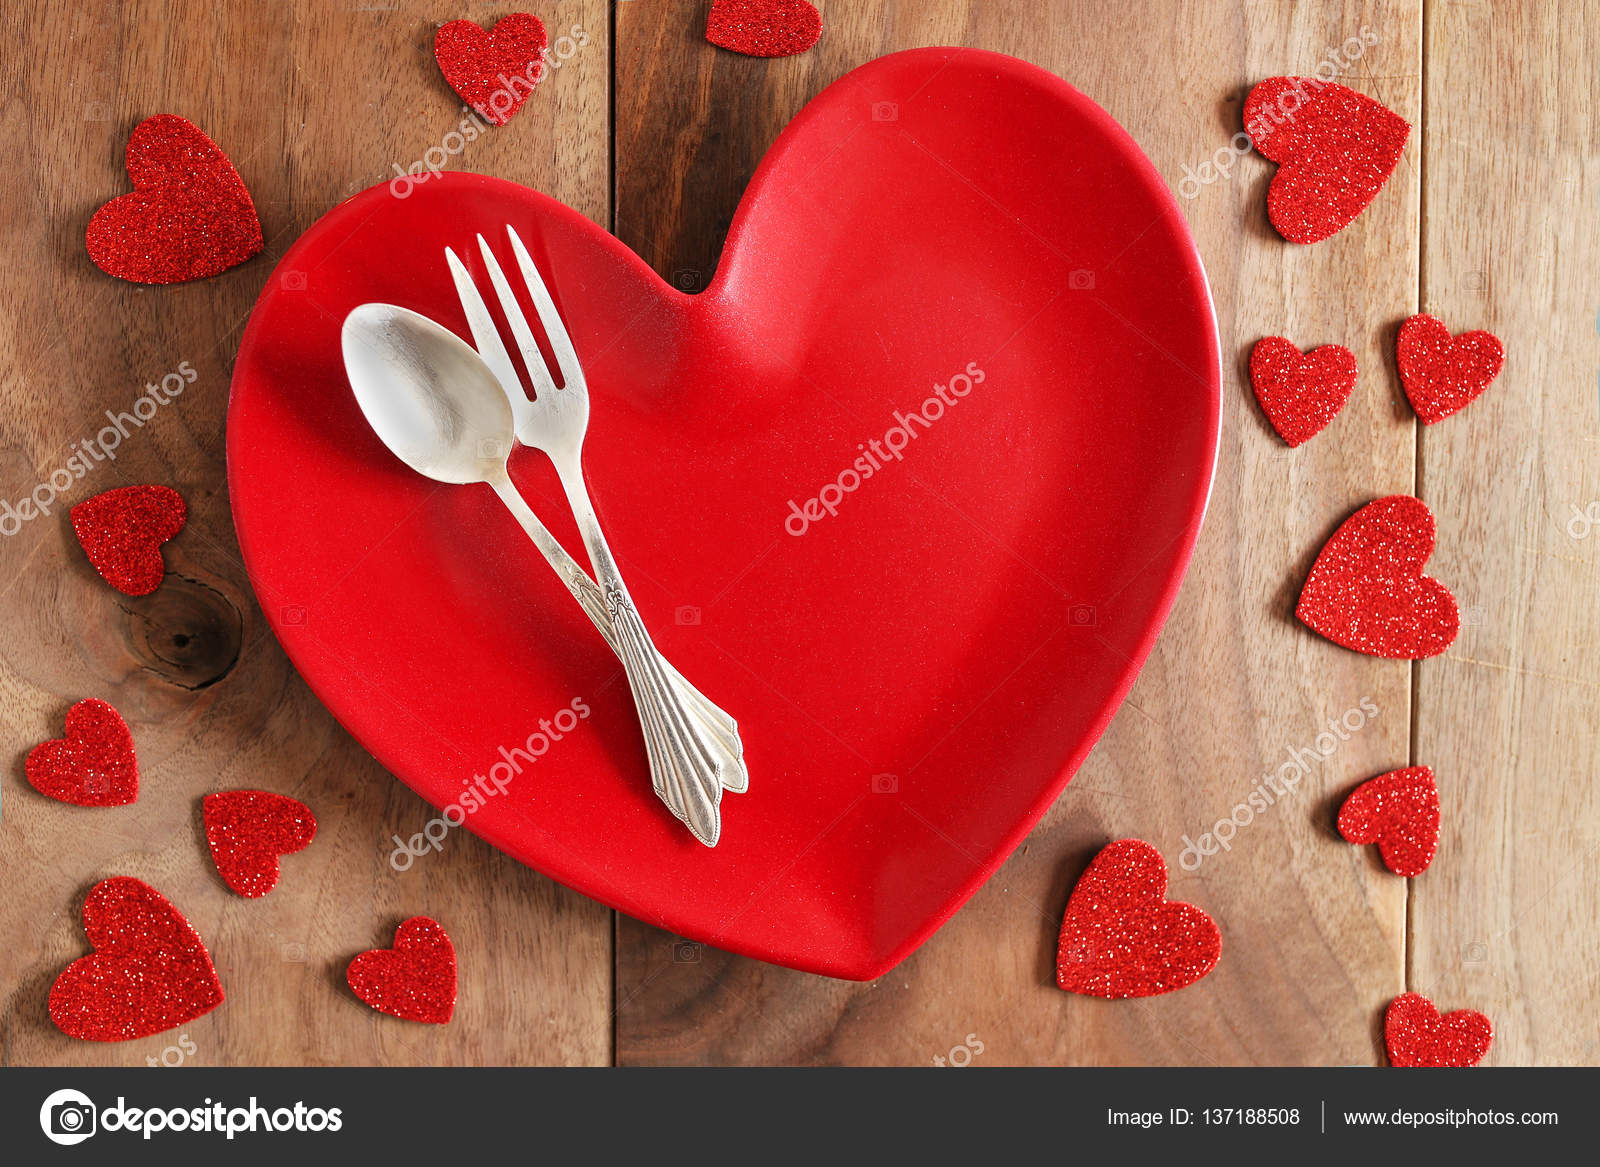 A red heart shaped dinner plate with fine German silver fork and spoon is on a rustic cherry wood planked table surrounded by Valentineu0027s Day confetti. & Heart Shaped Dinner Plate with Fine Silverware on Wood Plank Tab ...